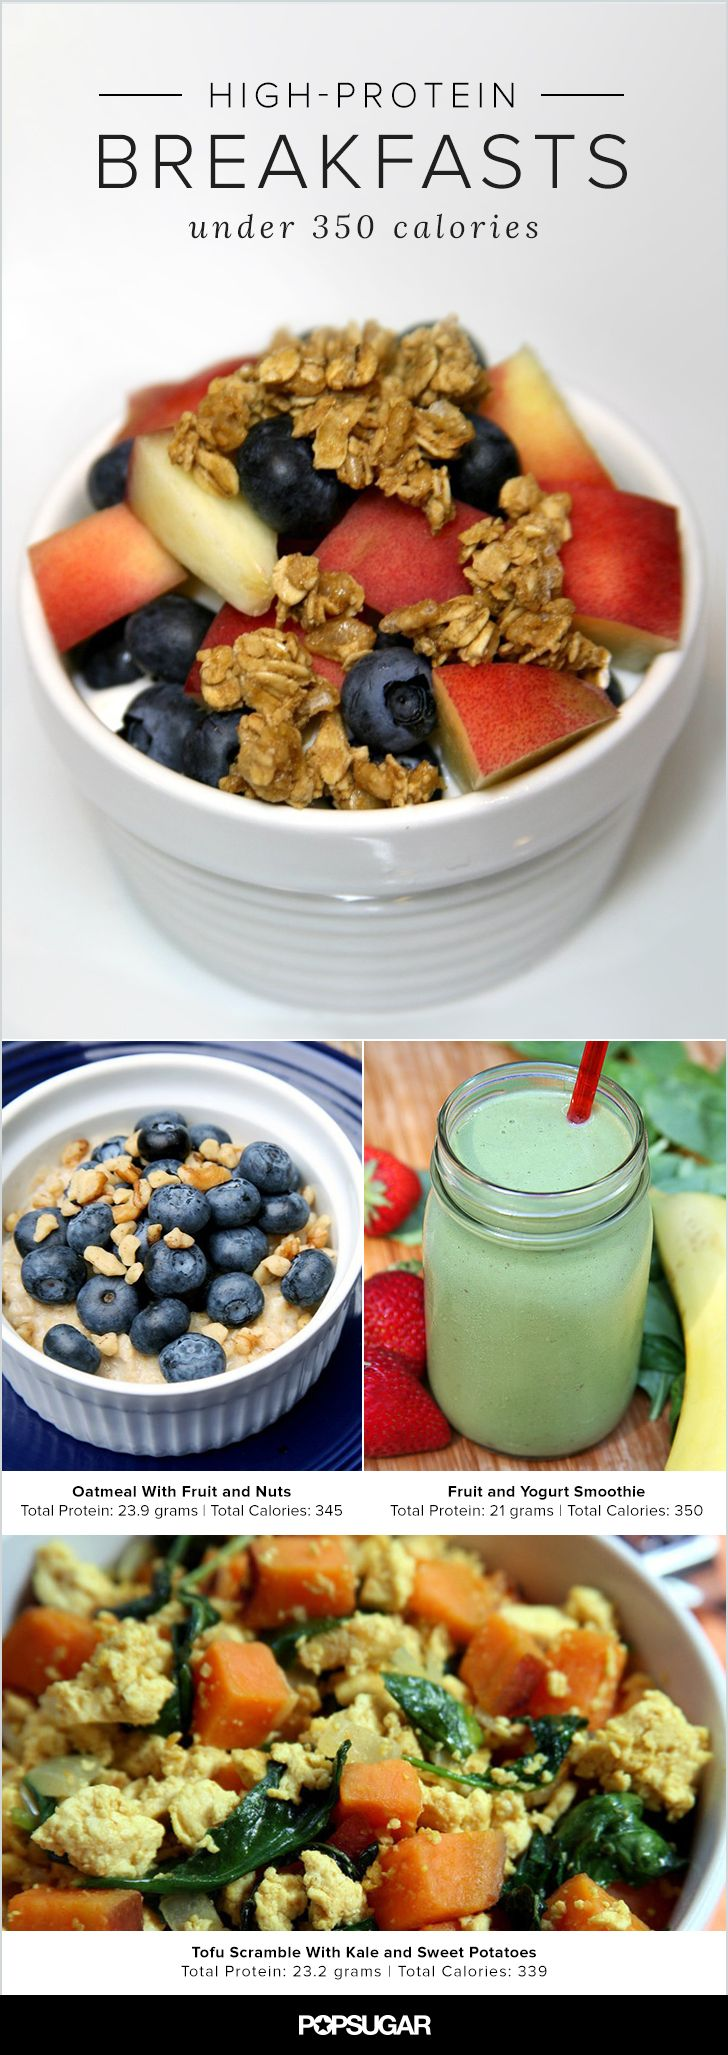 Looking for a breakfast full of nutrients that maintains energy and hunger till lunch time? Here are some breakfast ideas that contain at least 20 grams of protein for under 350 calories.